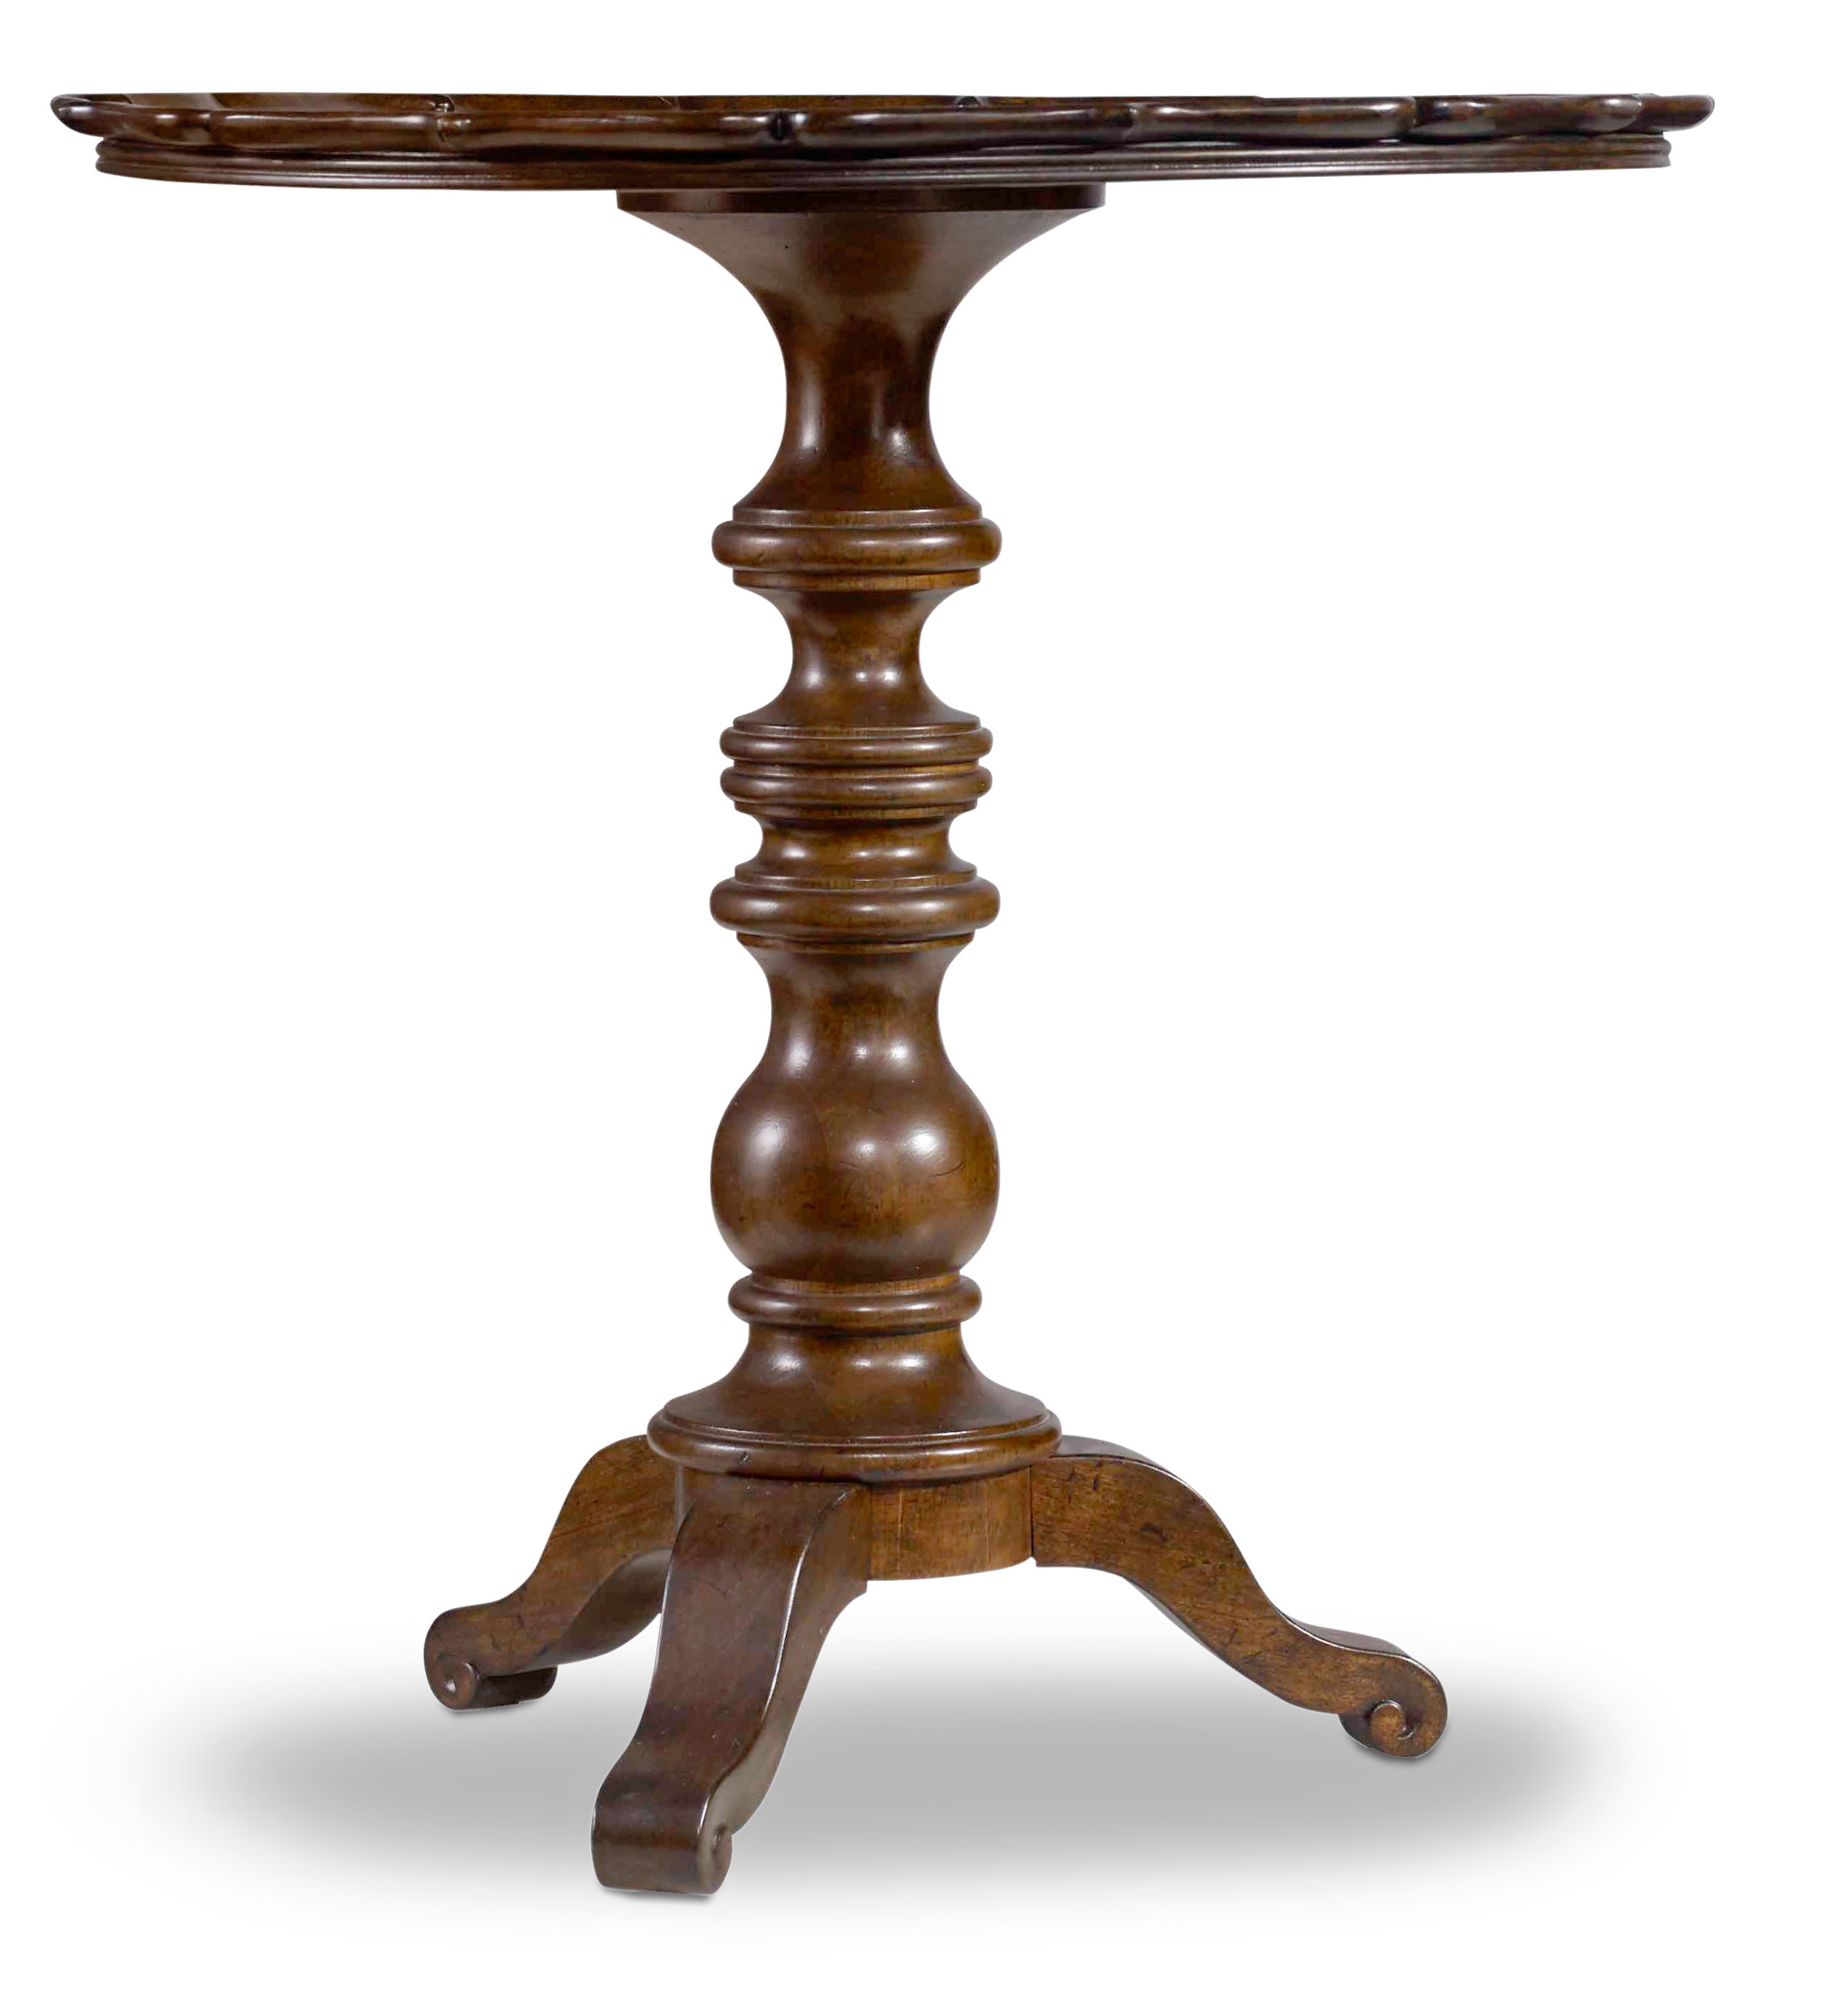 Hooker Furniture Leesburg Round Accent Table - Item Number: 5381-50001